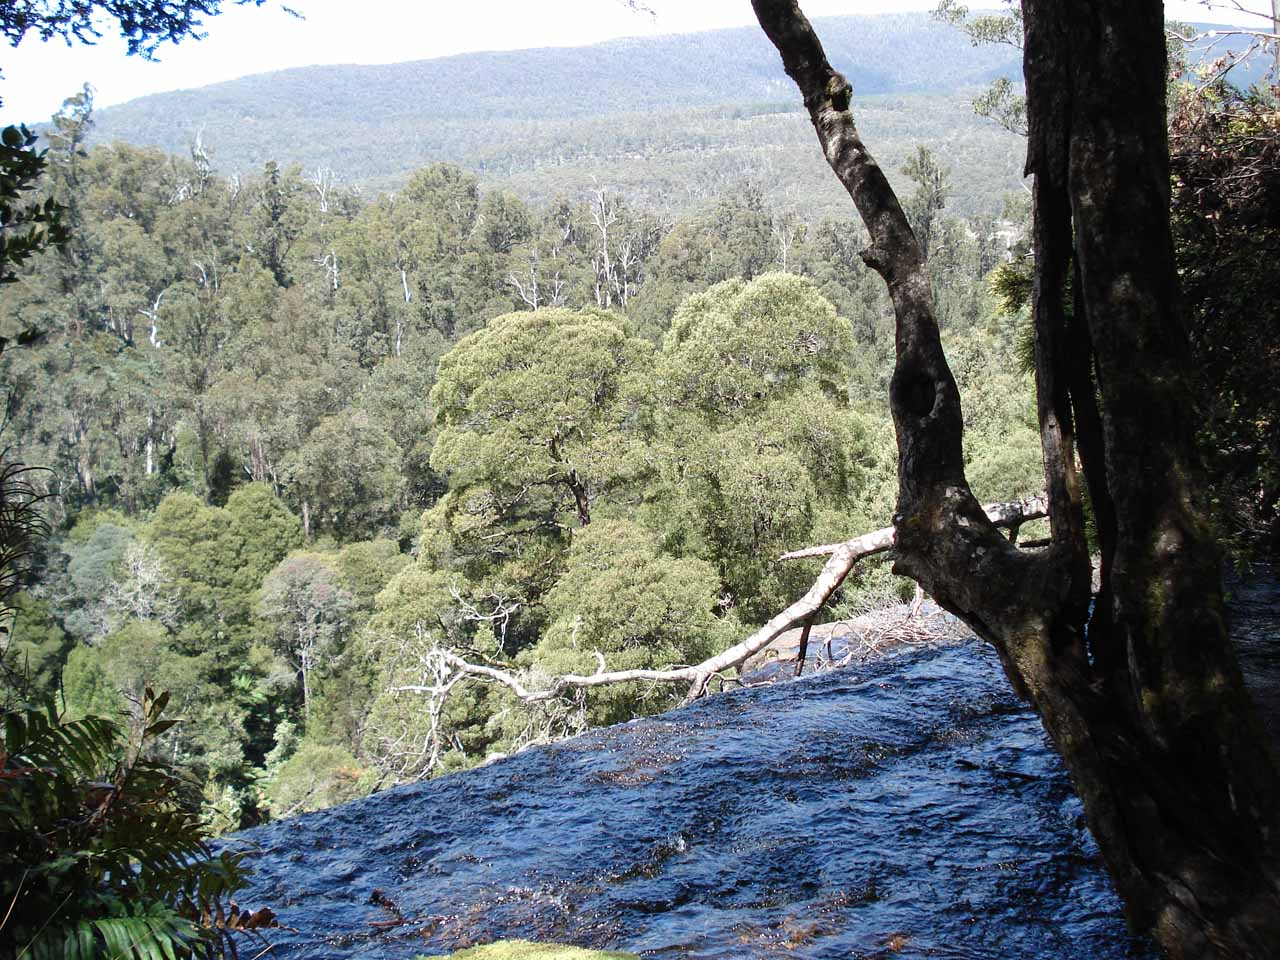 Looking over the top of the lower tier of Russell Falls